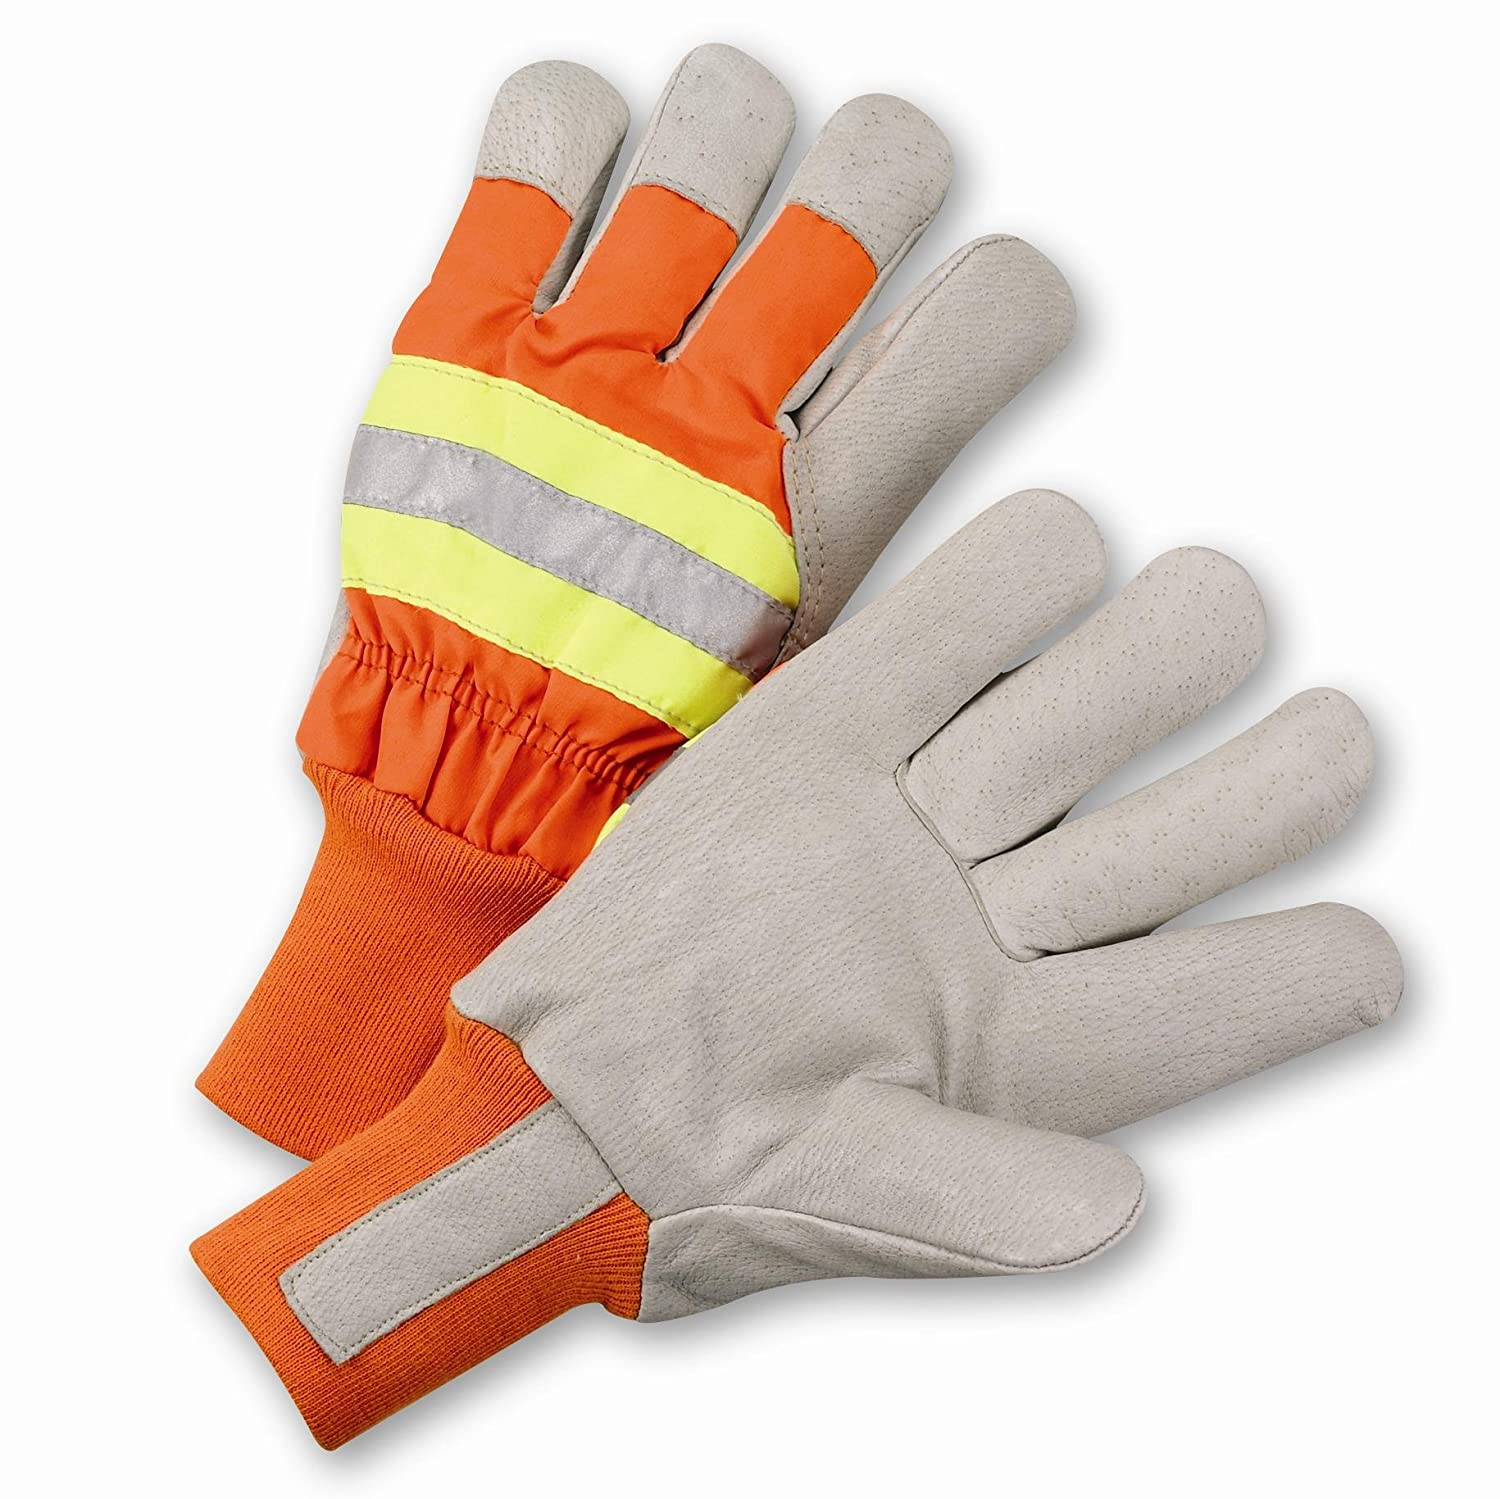 Orange West Chester HVO1555 High-Visibility Grain Pigskin Leather Palm Posi-therm Lined Gloves Pack of 12 XL HVO1555//XL